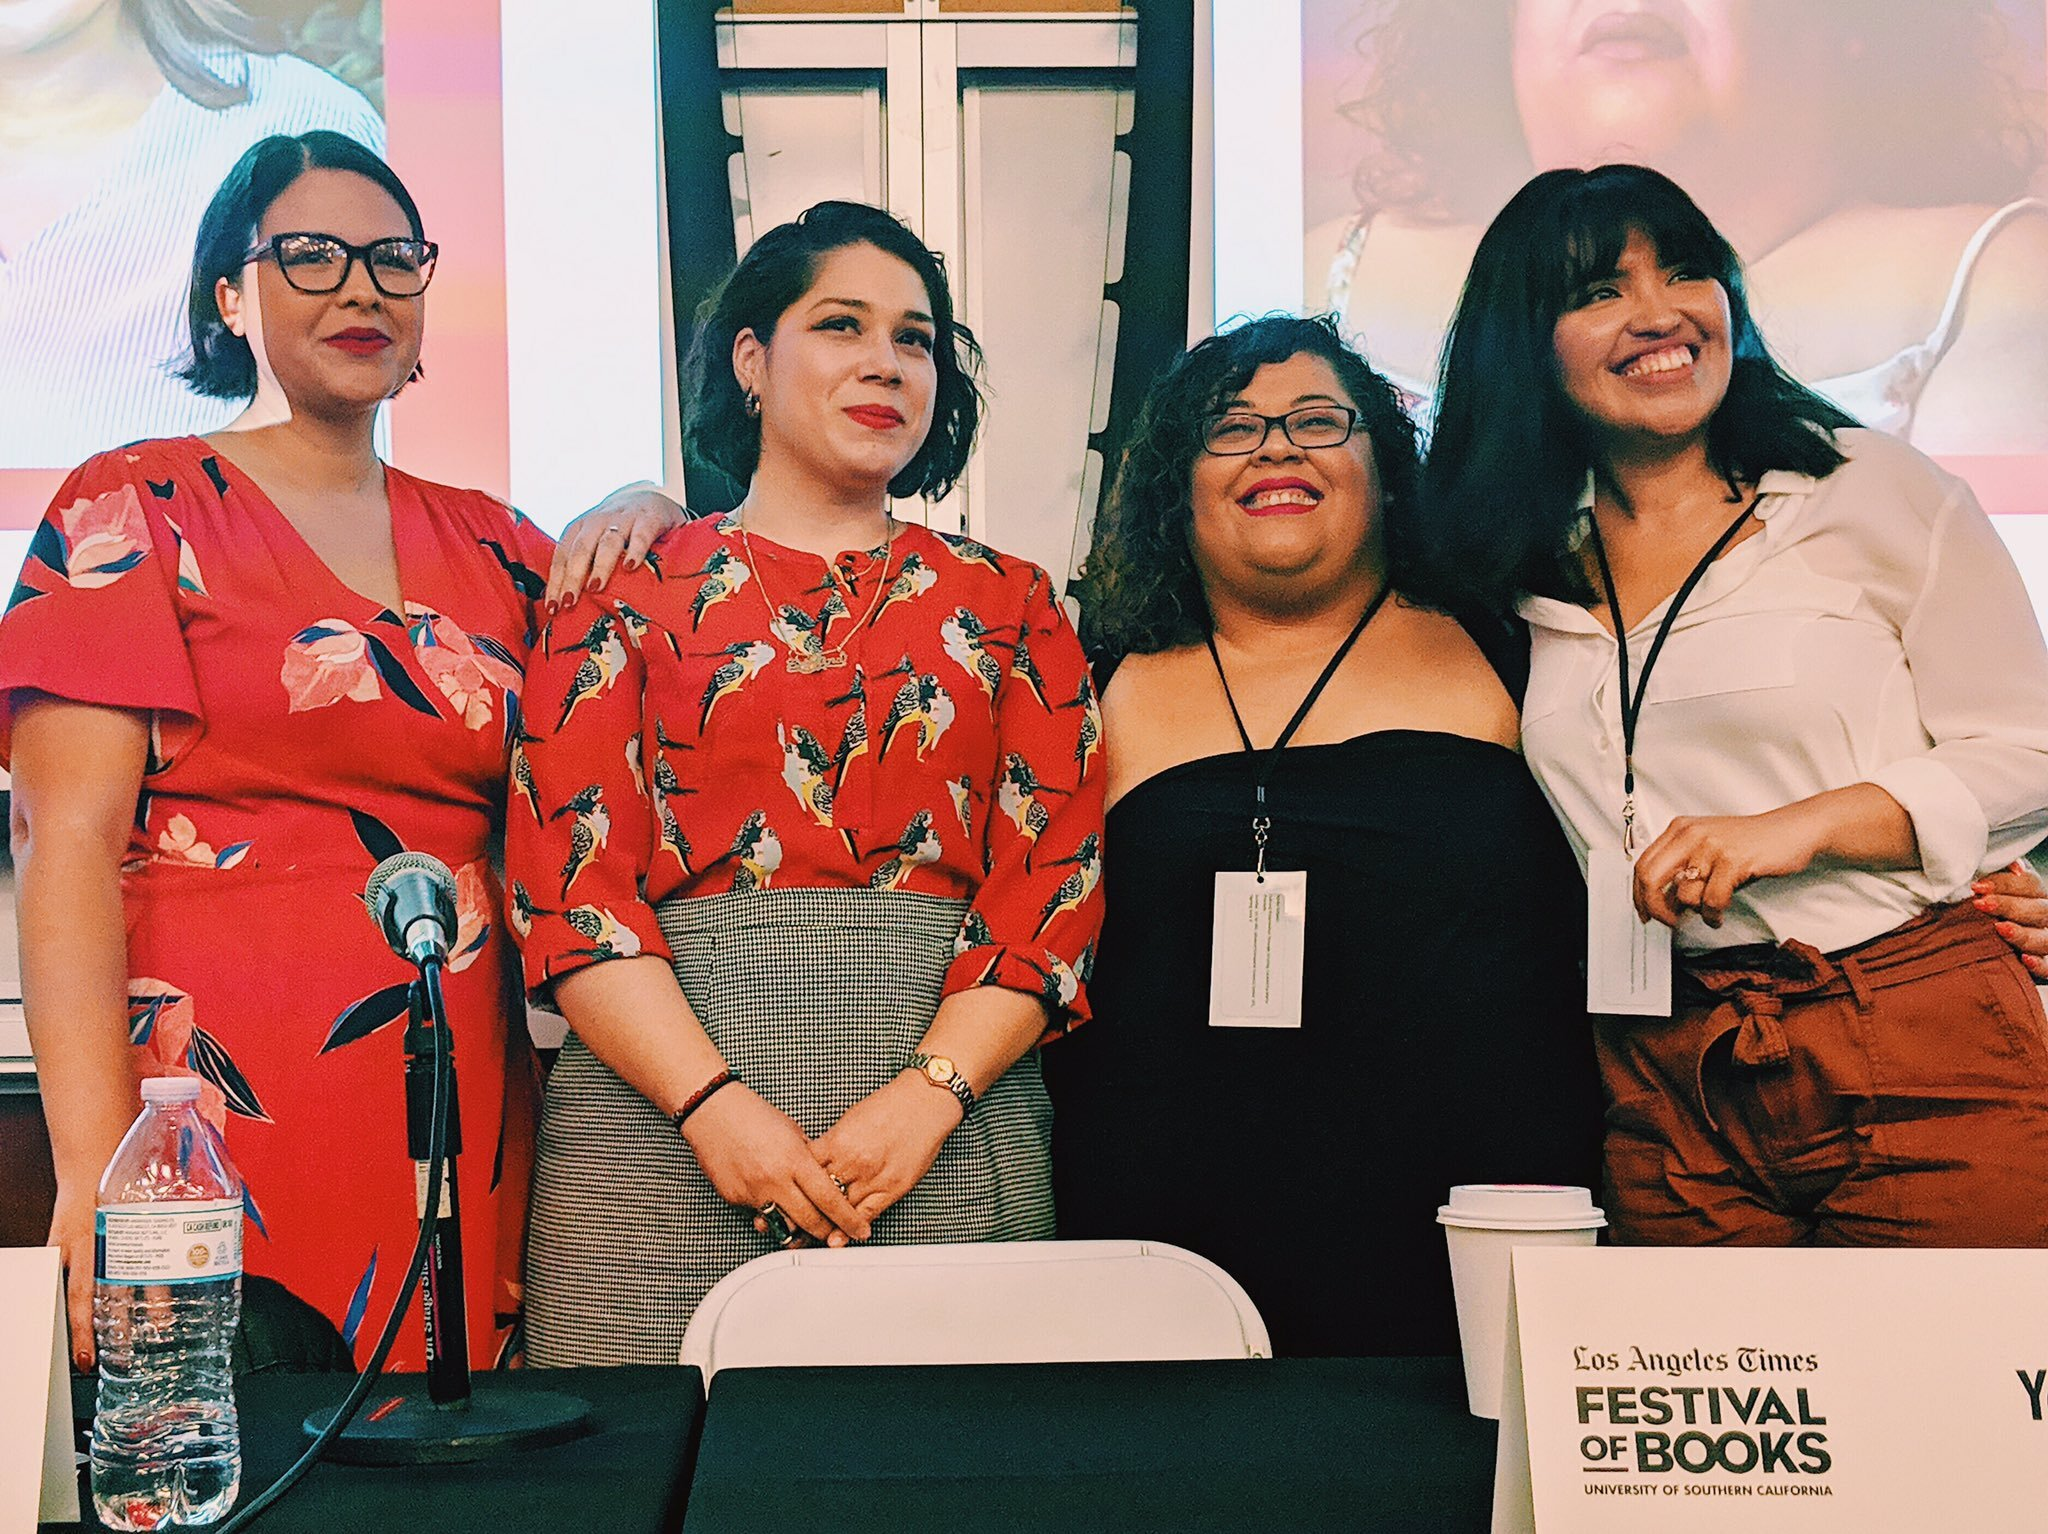 Left to right: Marty Preciado, Yeiry Guevara, Yesika Salgado, Karla T. Vasquez for L.A. Times Festival of Books 2019